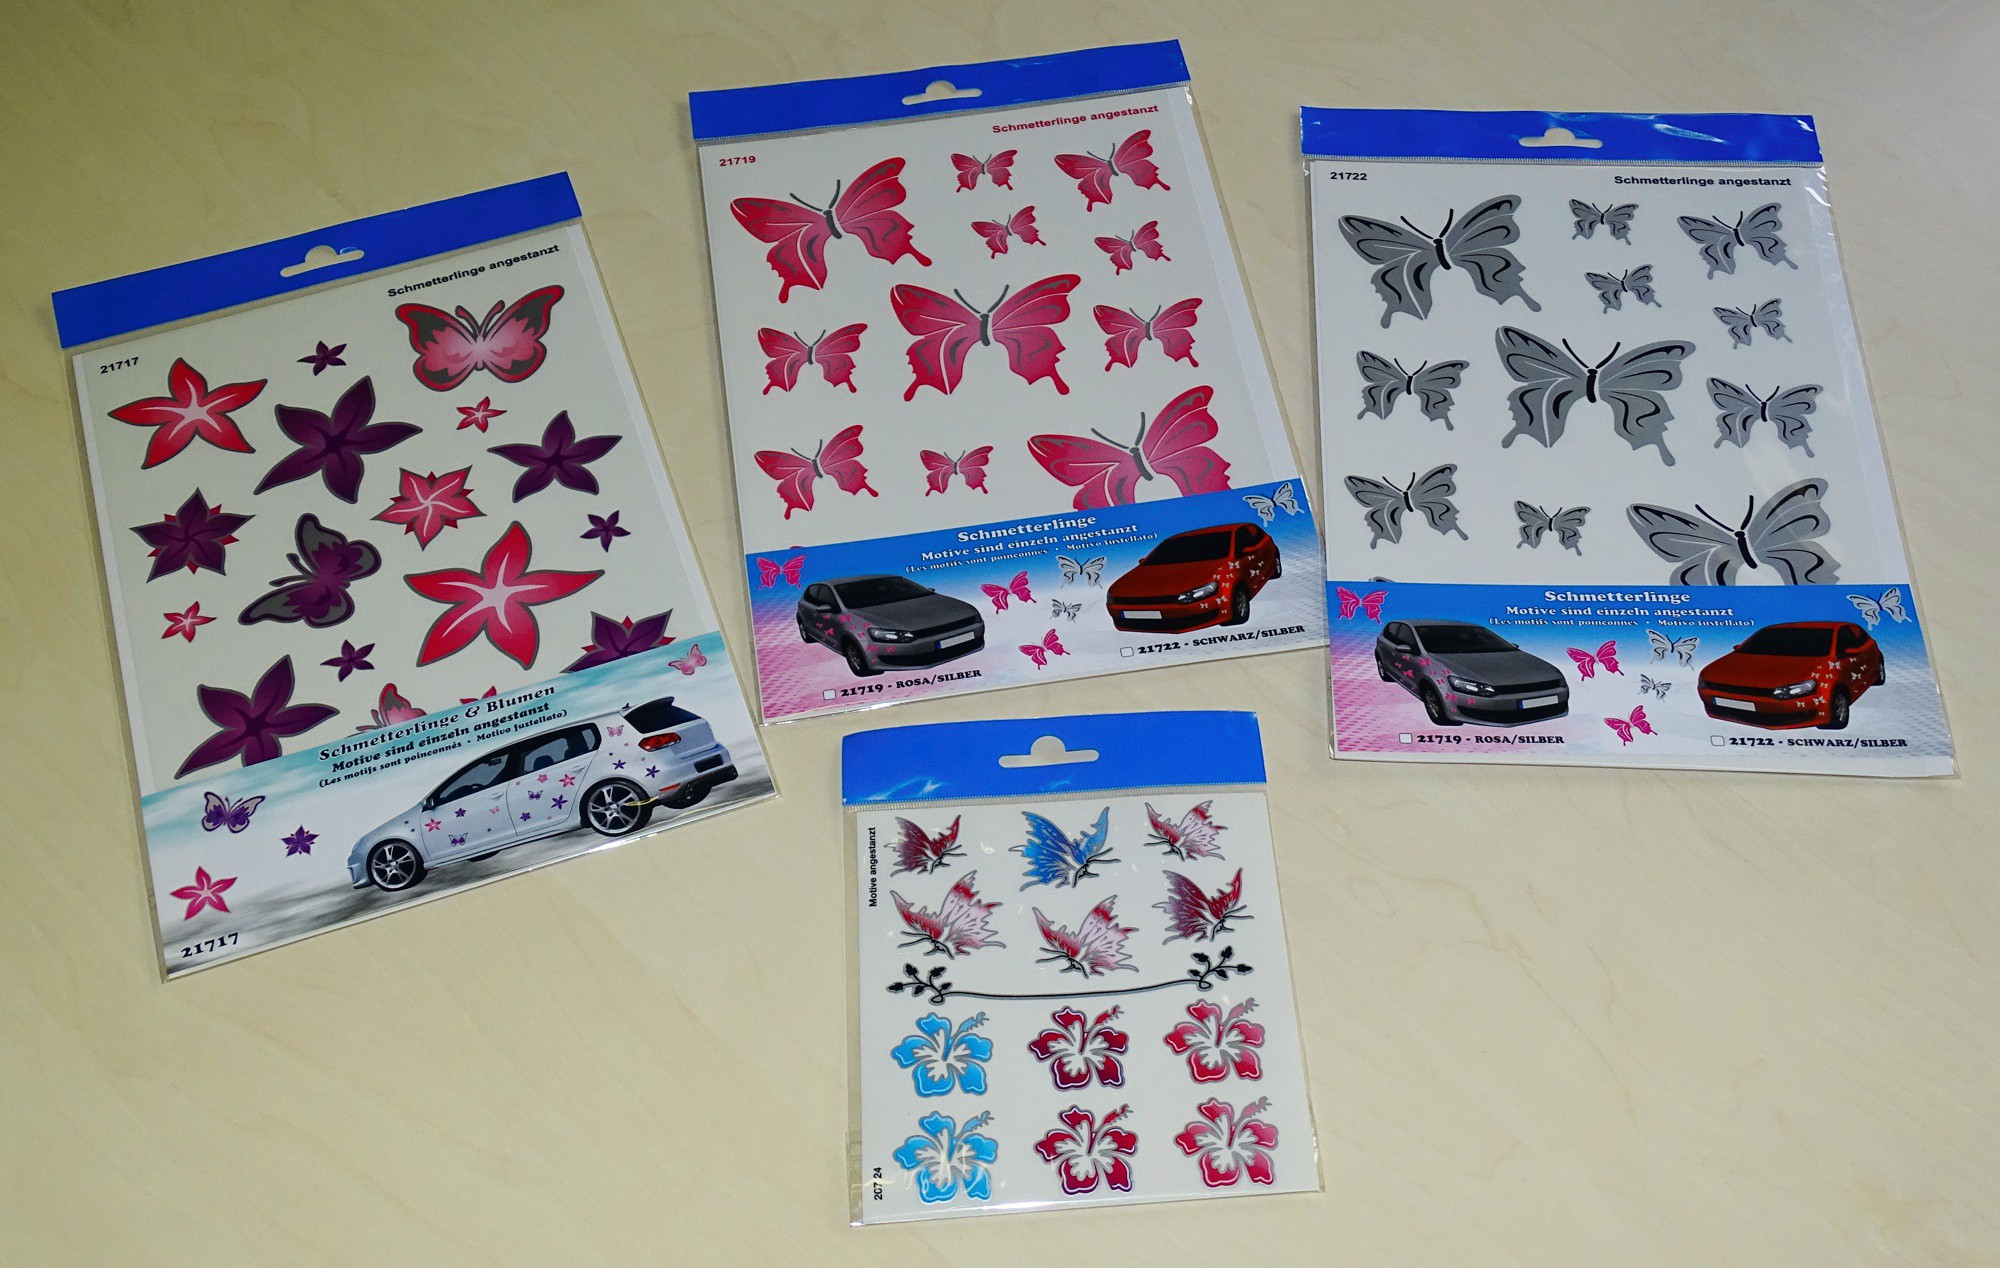 Sticker Butterflies and Flowers 300 x 200 mm – Bild 2